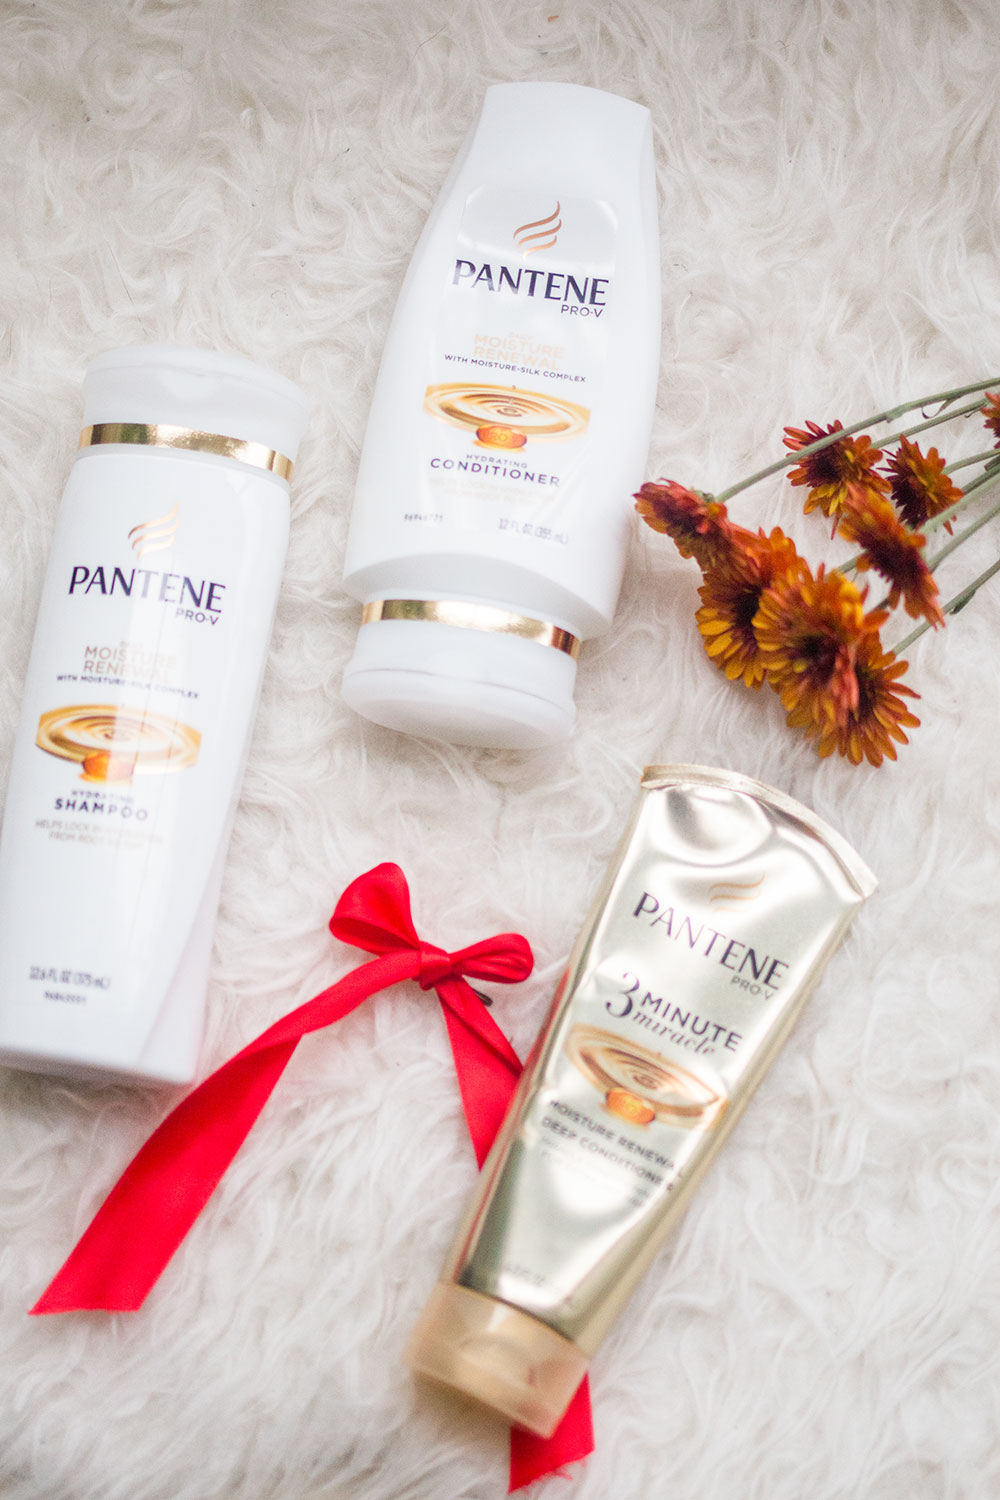 Pantene Daily Moisture Renewal Hair Care Review // Hello Rigby Seattle Beauty Blog